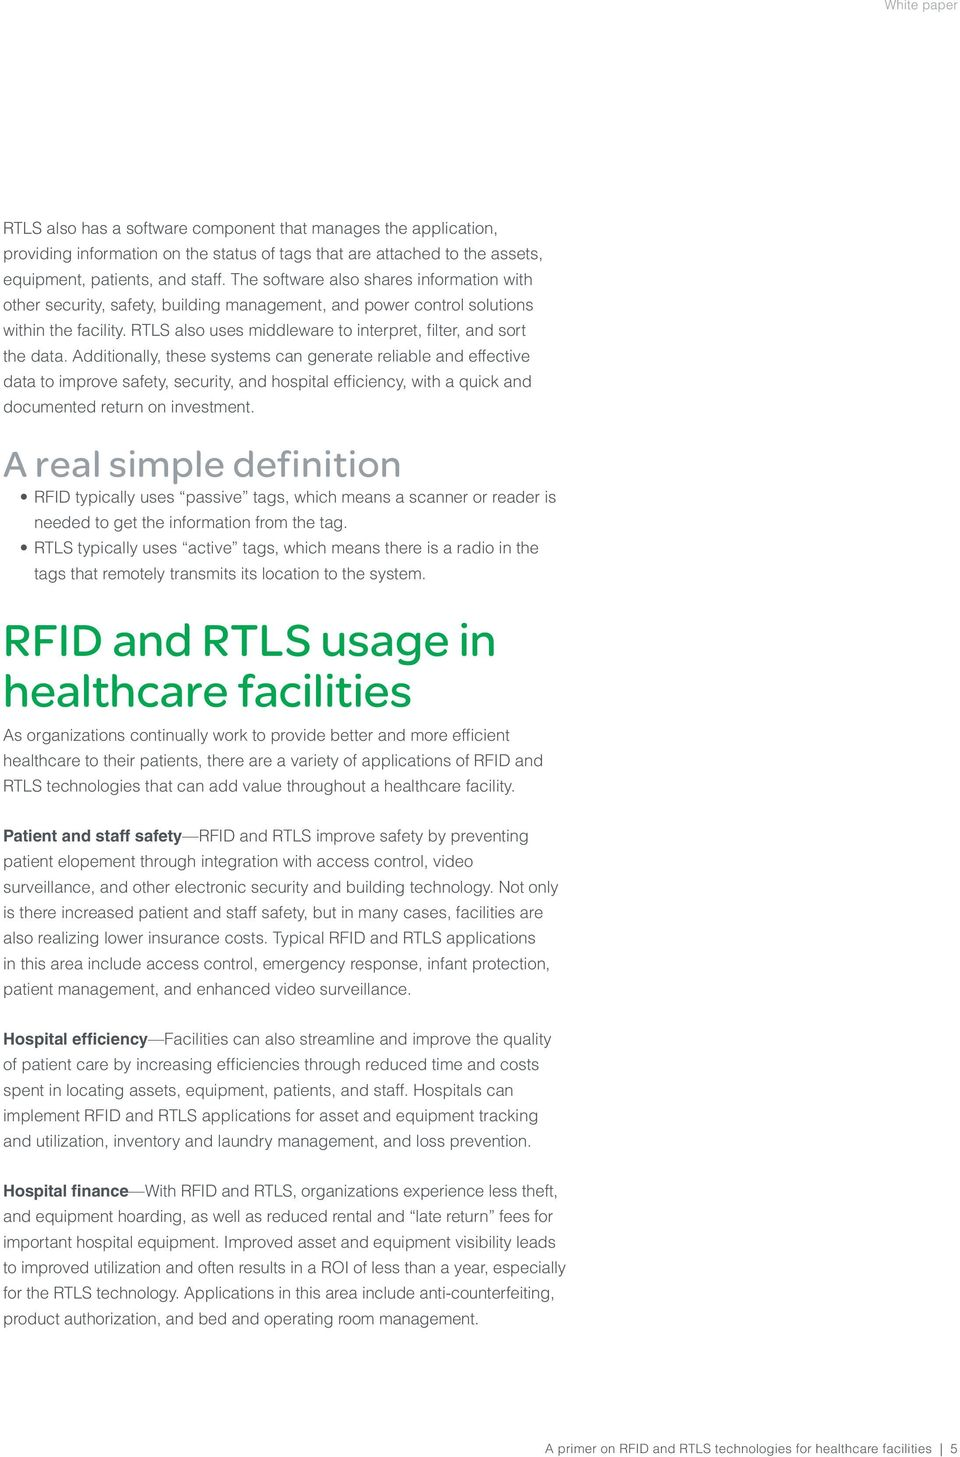 A primer on RFID and RTLS technologies for healthcare facilities - PDF